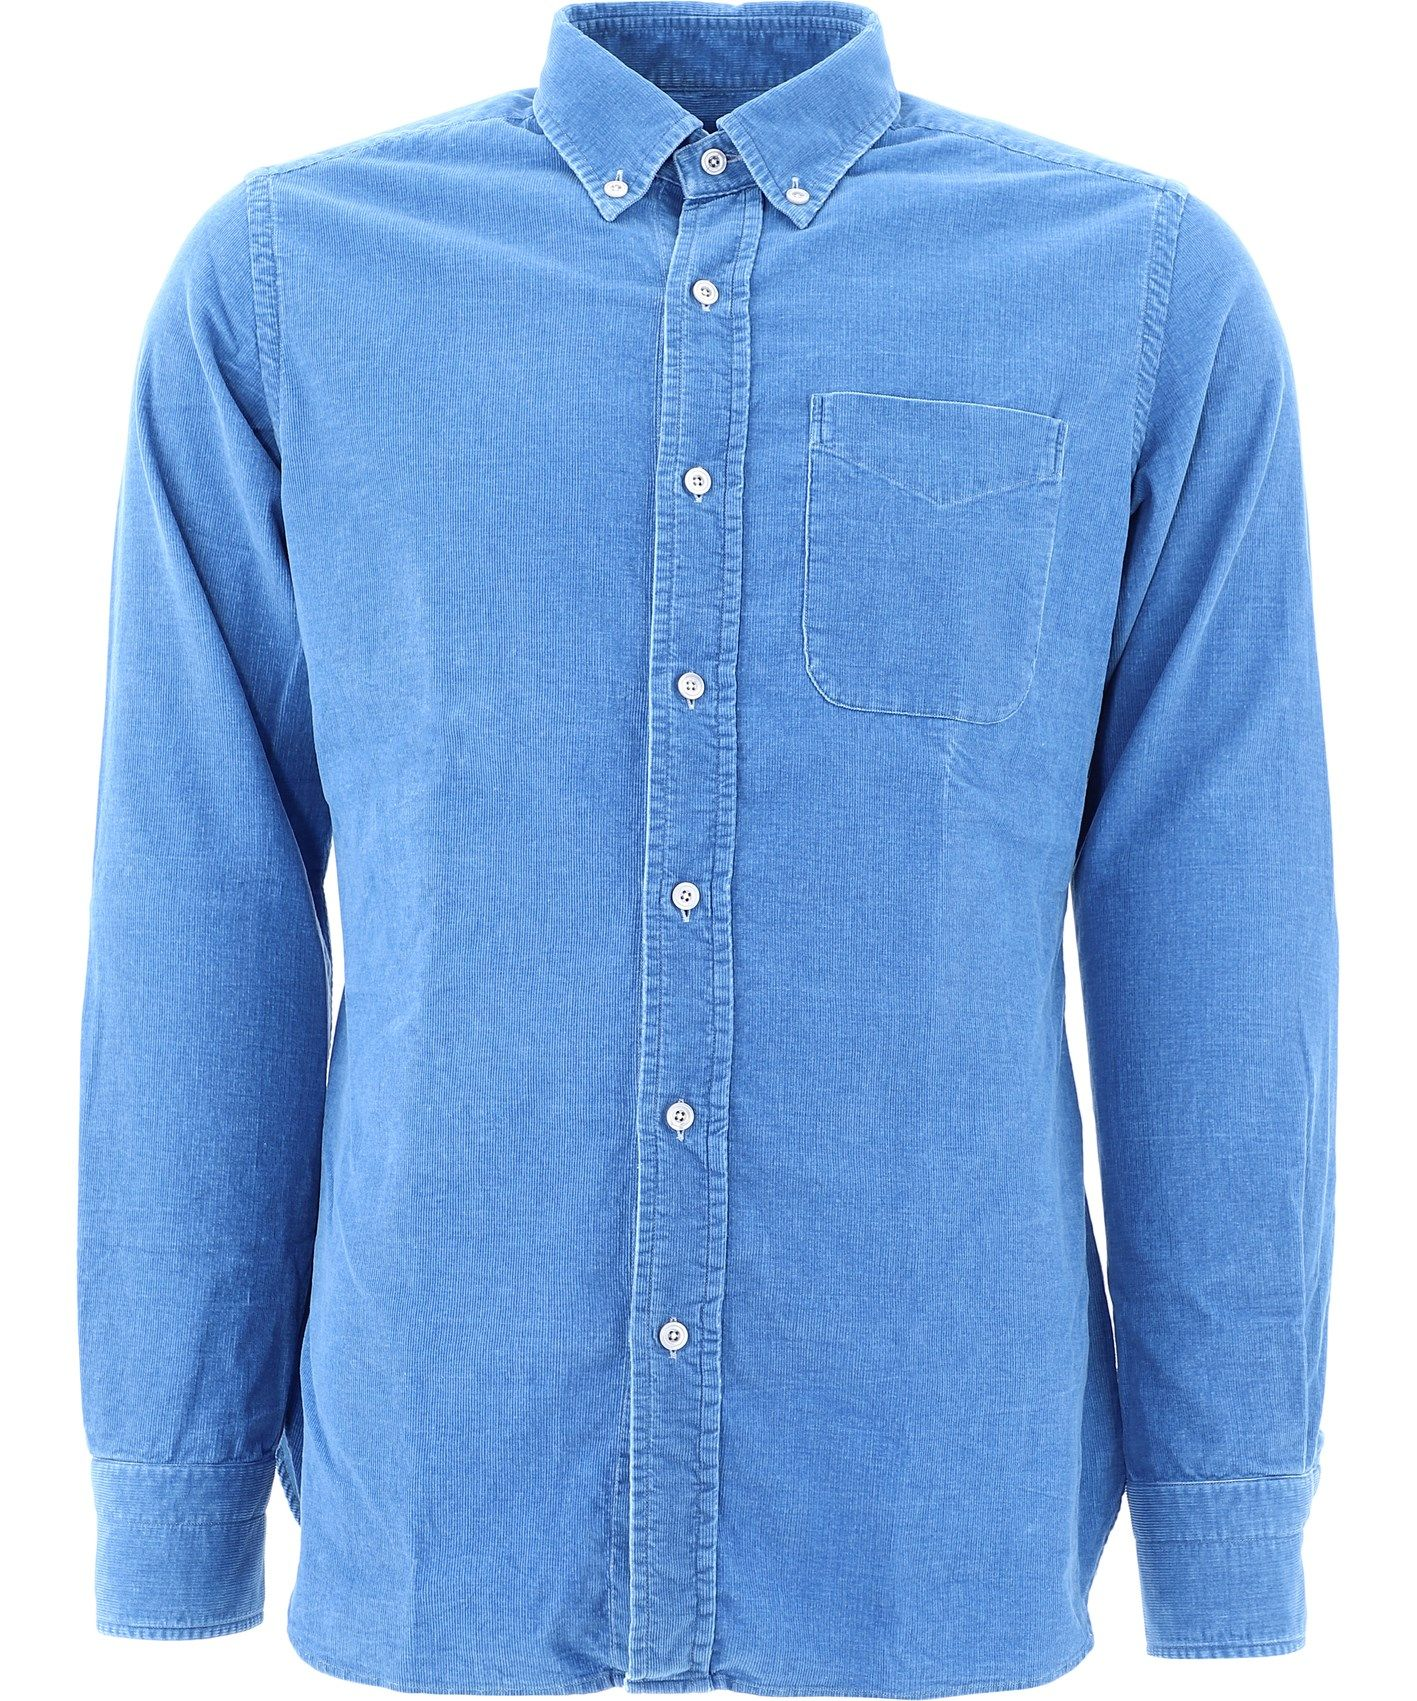 TOM FORD TOM FORD MEN'S LIGHT BLUE COTTON SHIRT